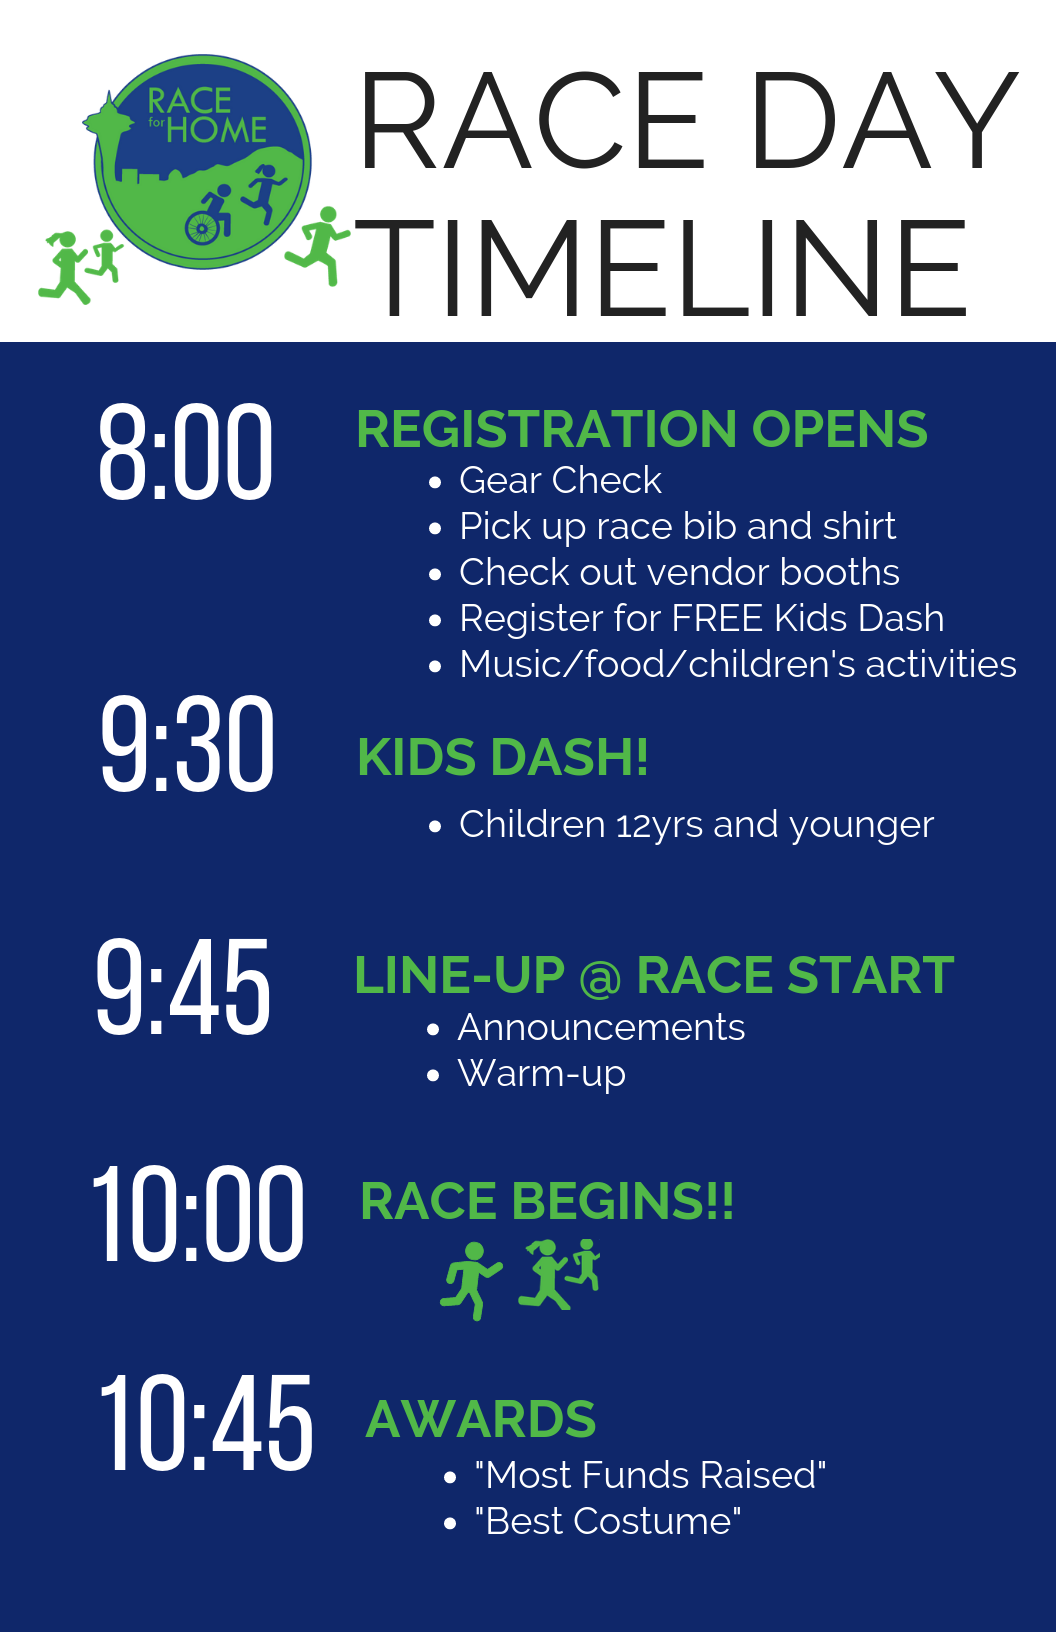 Day of Race Timeline